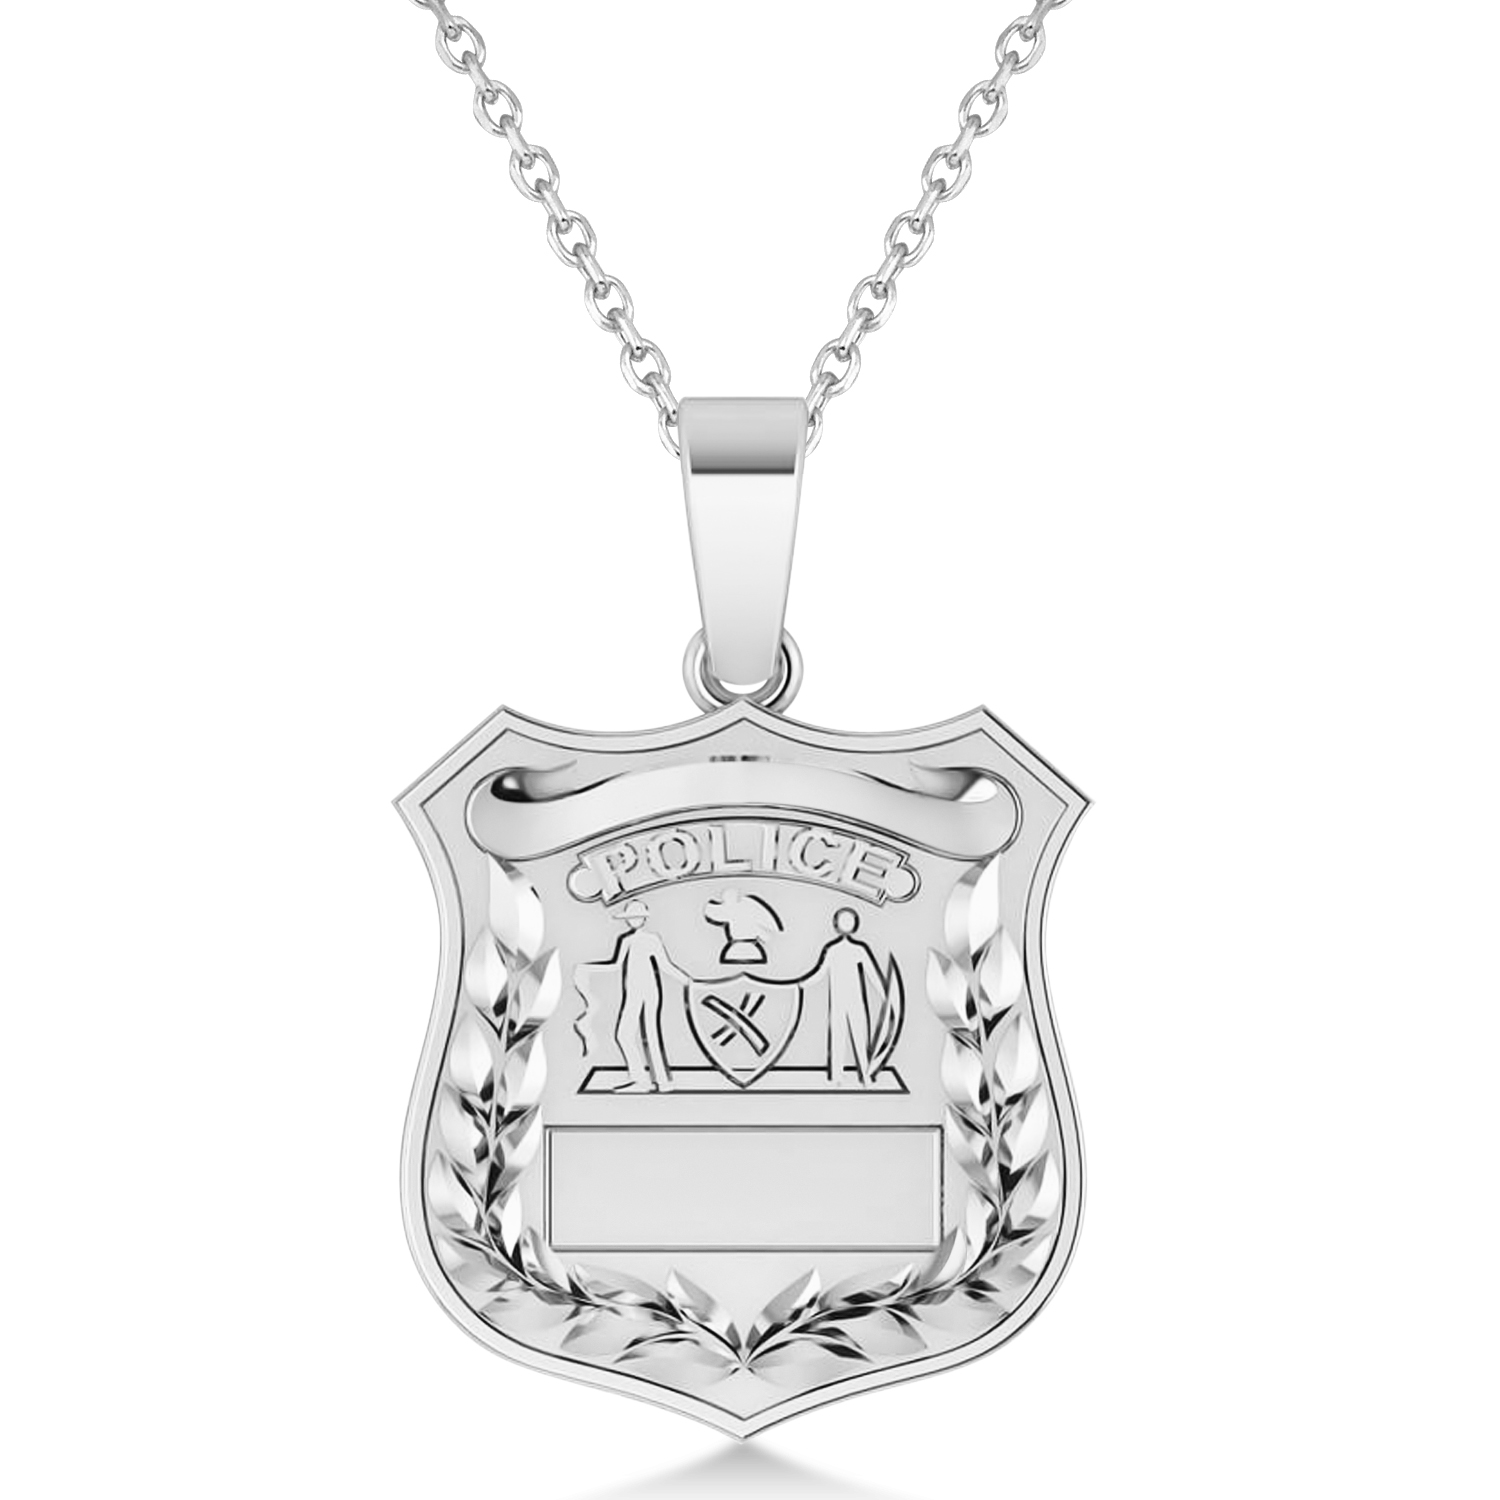 Police Department Badge Pendant Necklace 14k White Gold